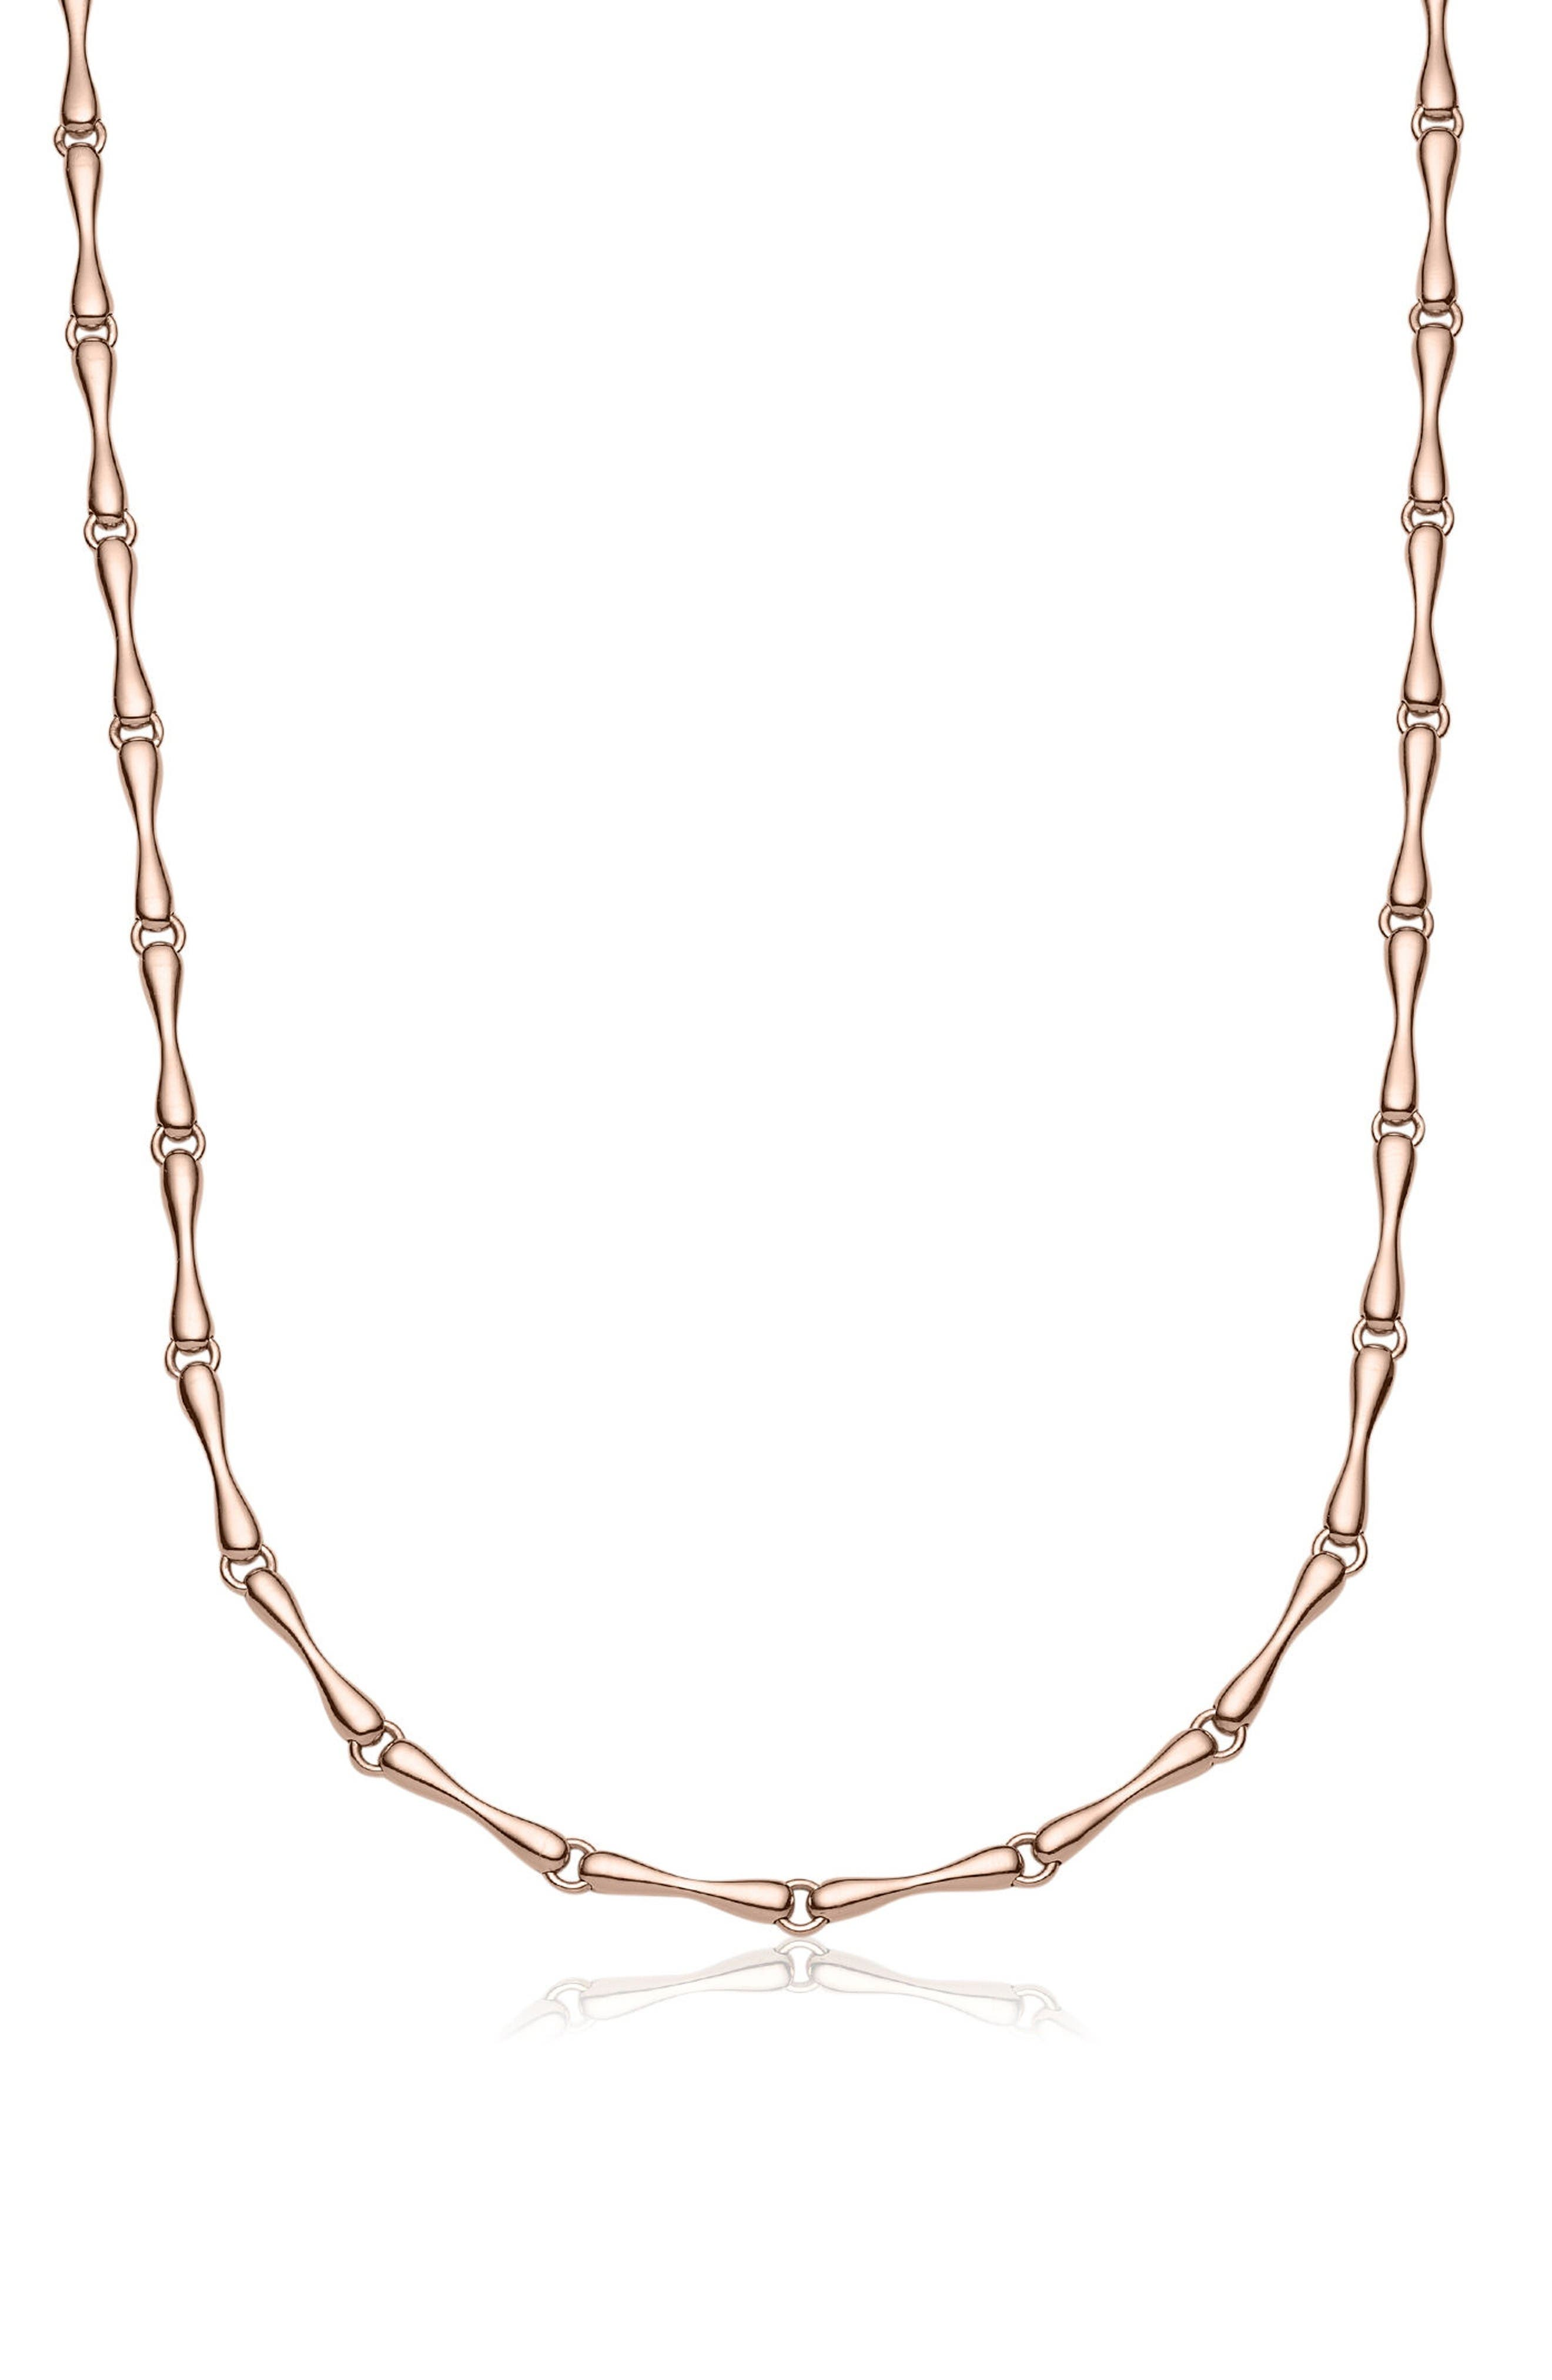 Nura Reef Chain Necklace,                         Main,                         color, Rose Gold